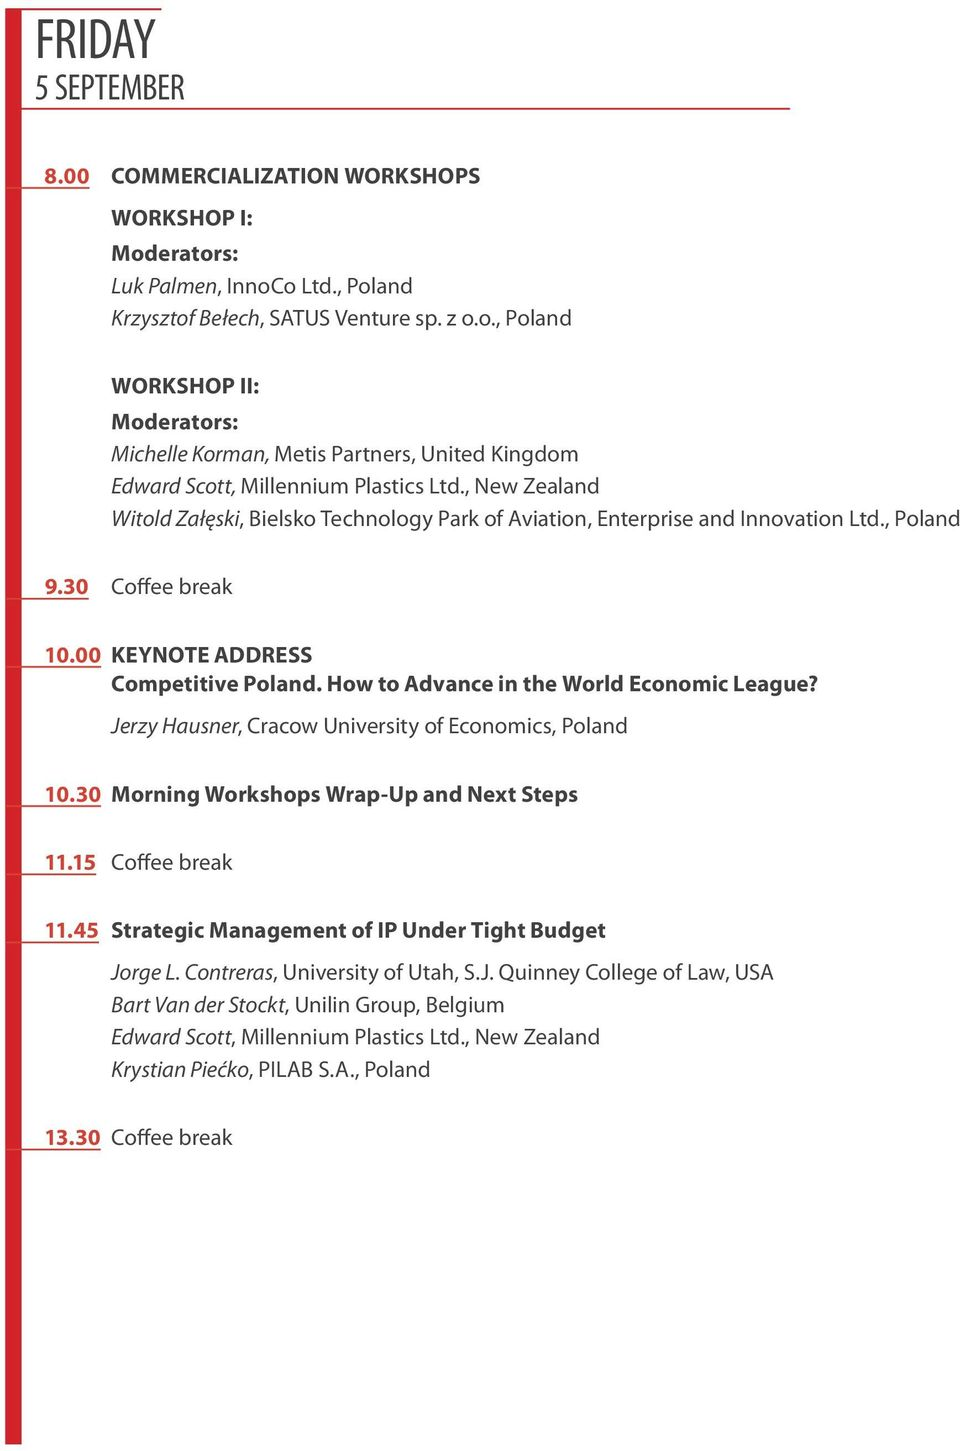 How to Advance in the World Economic League? Jerzy Hausner, Cracow University of Economics, Poland 10.30 Morning Workshops Wrap-Up and Next Steps 11.15 Coffee break 11.